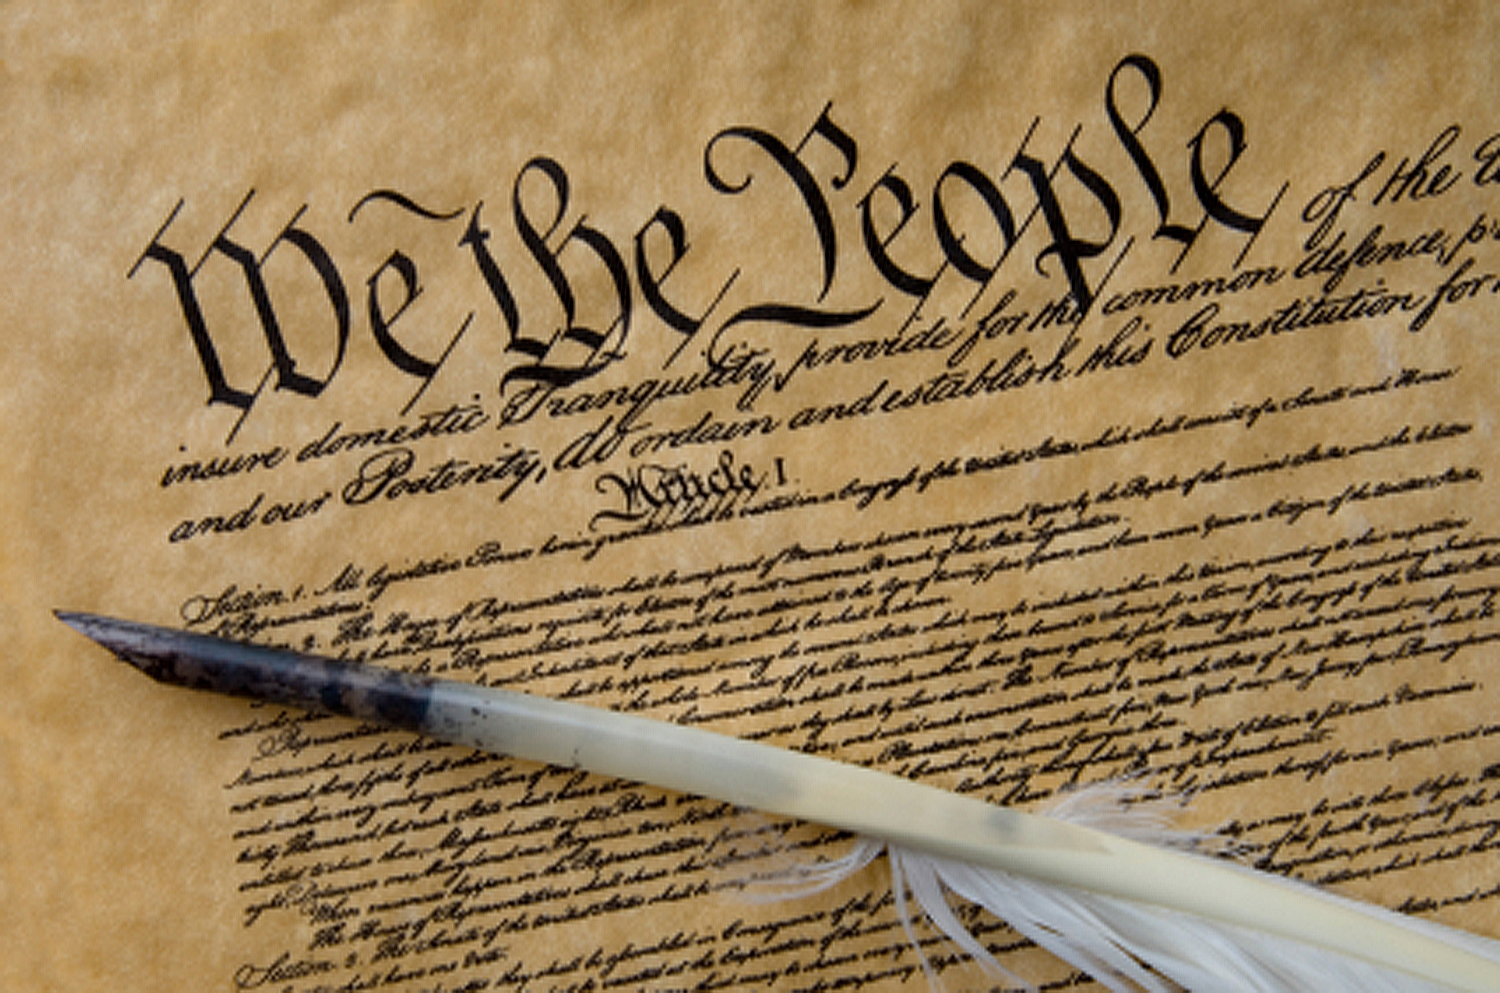 quiz for u s constitution class Us constitution examination prep course & exam a preparatory workshop and exam on the us constitution about upcoming dates for this class.